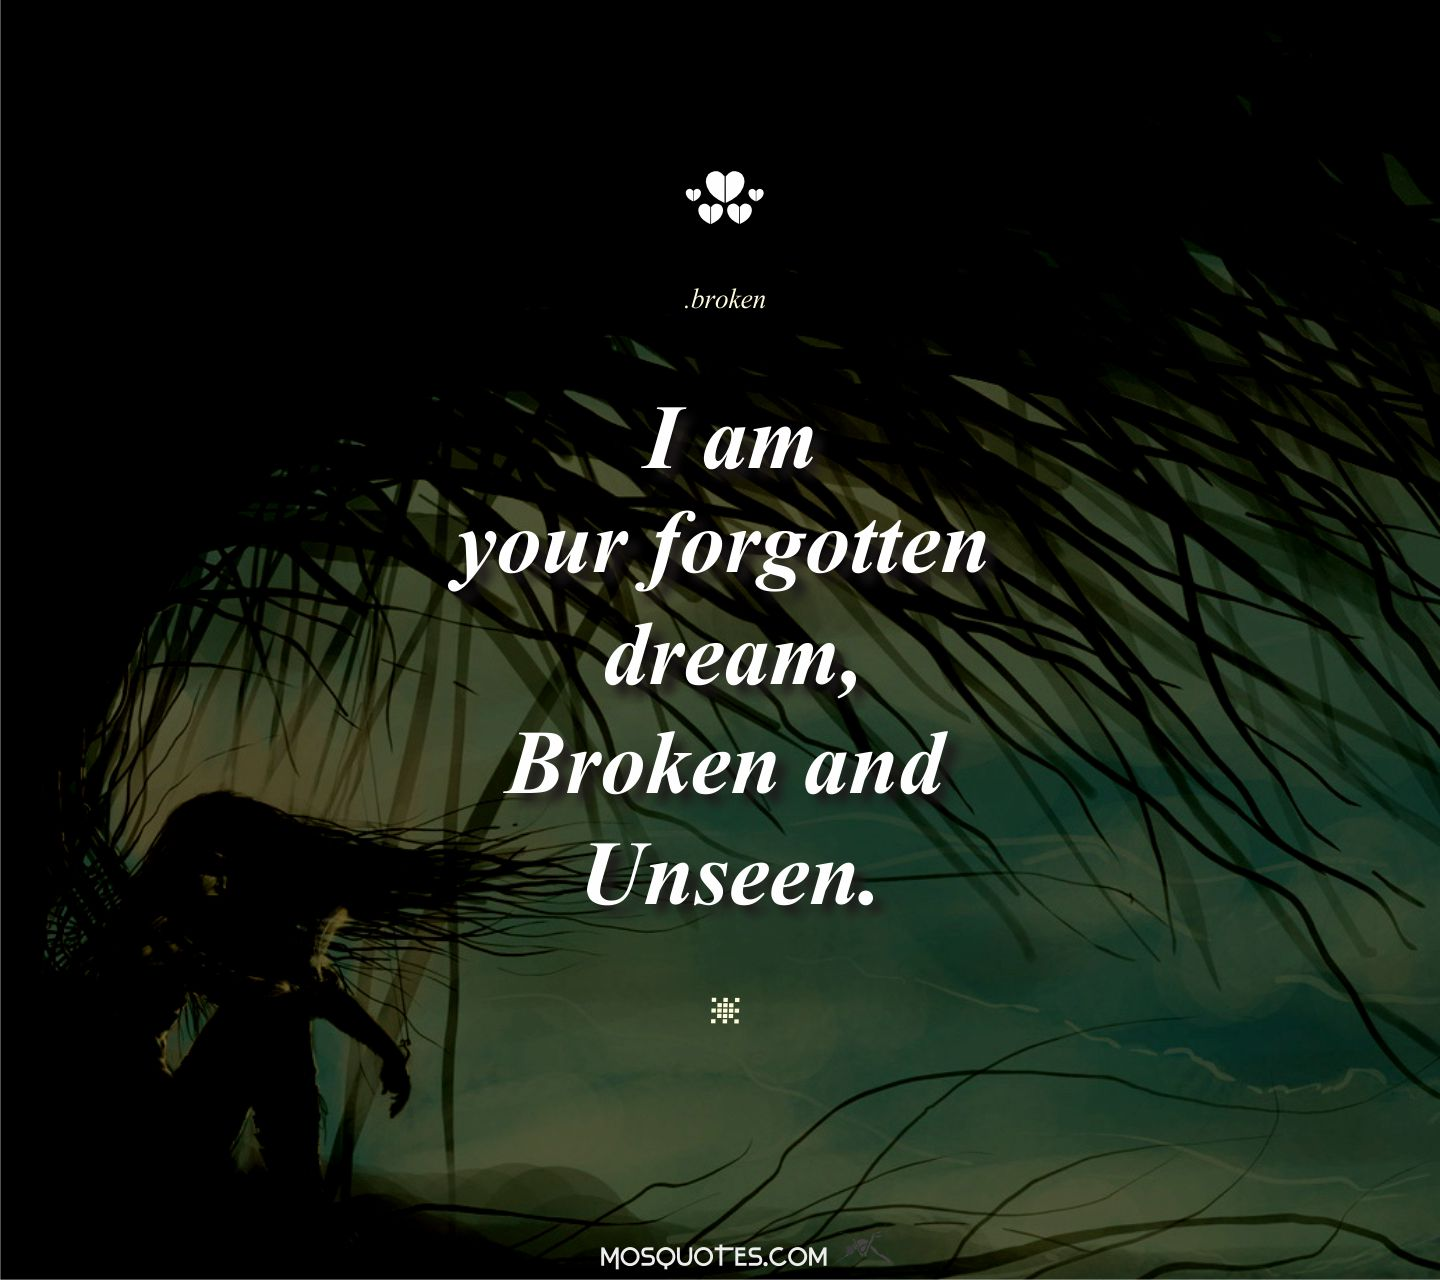 Broken Dreams Quotes. QuotesGram